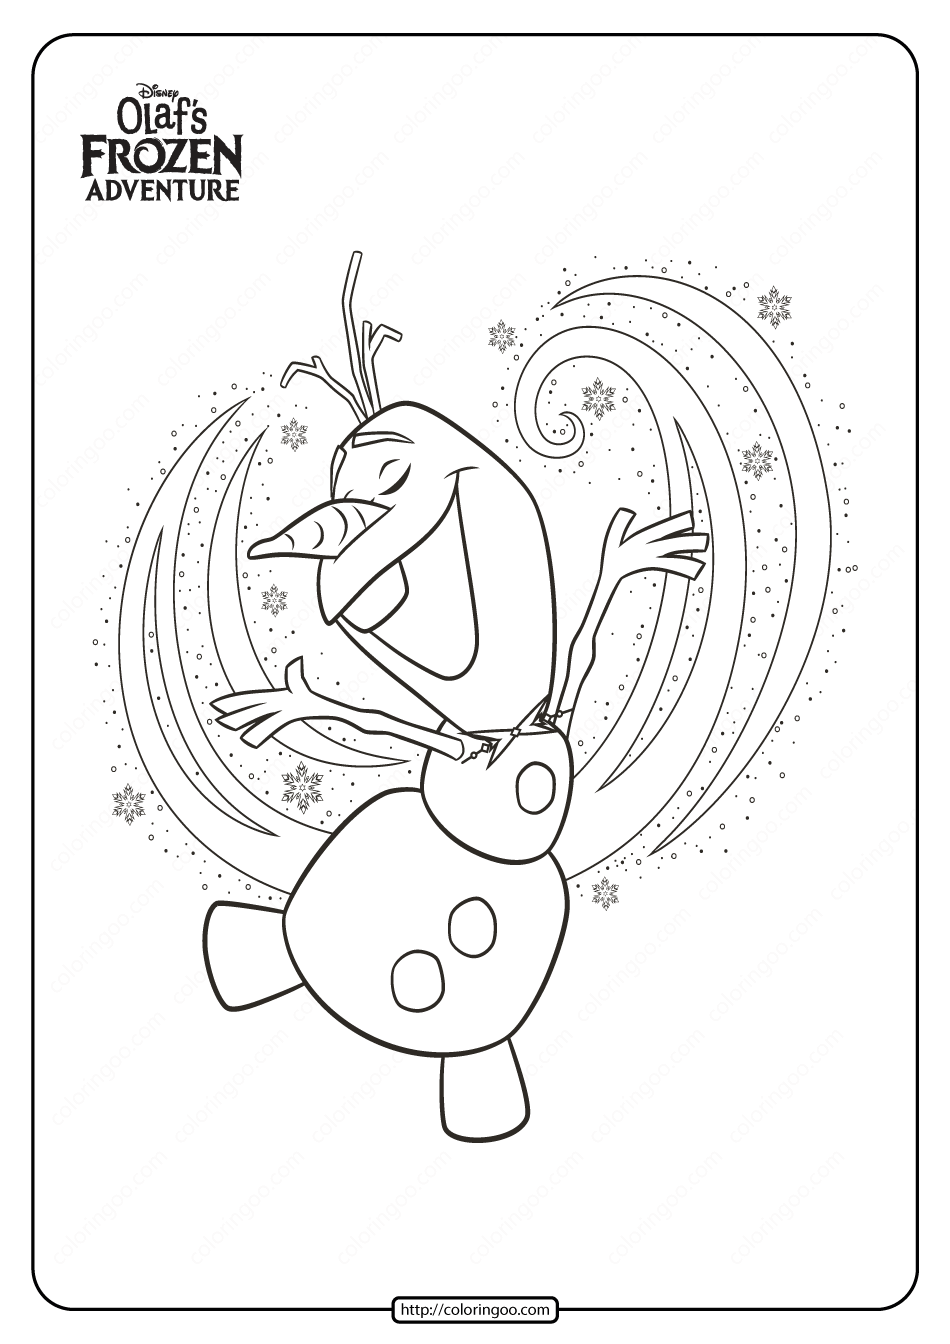 Disney Olaf S Frozen Adventure Coloring Pages 02 Olaf Frozen Disney Olaf Coloring Pages